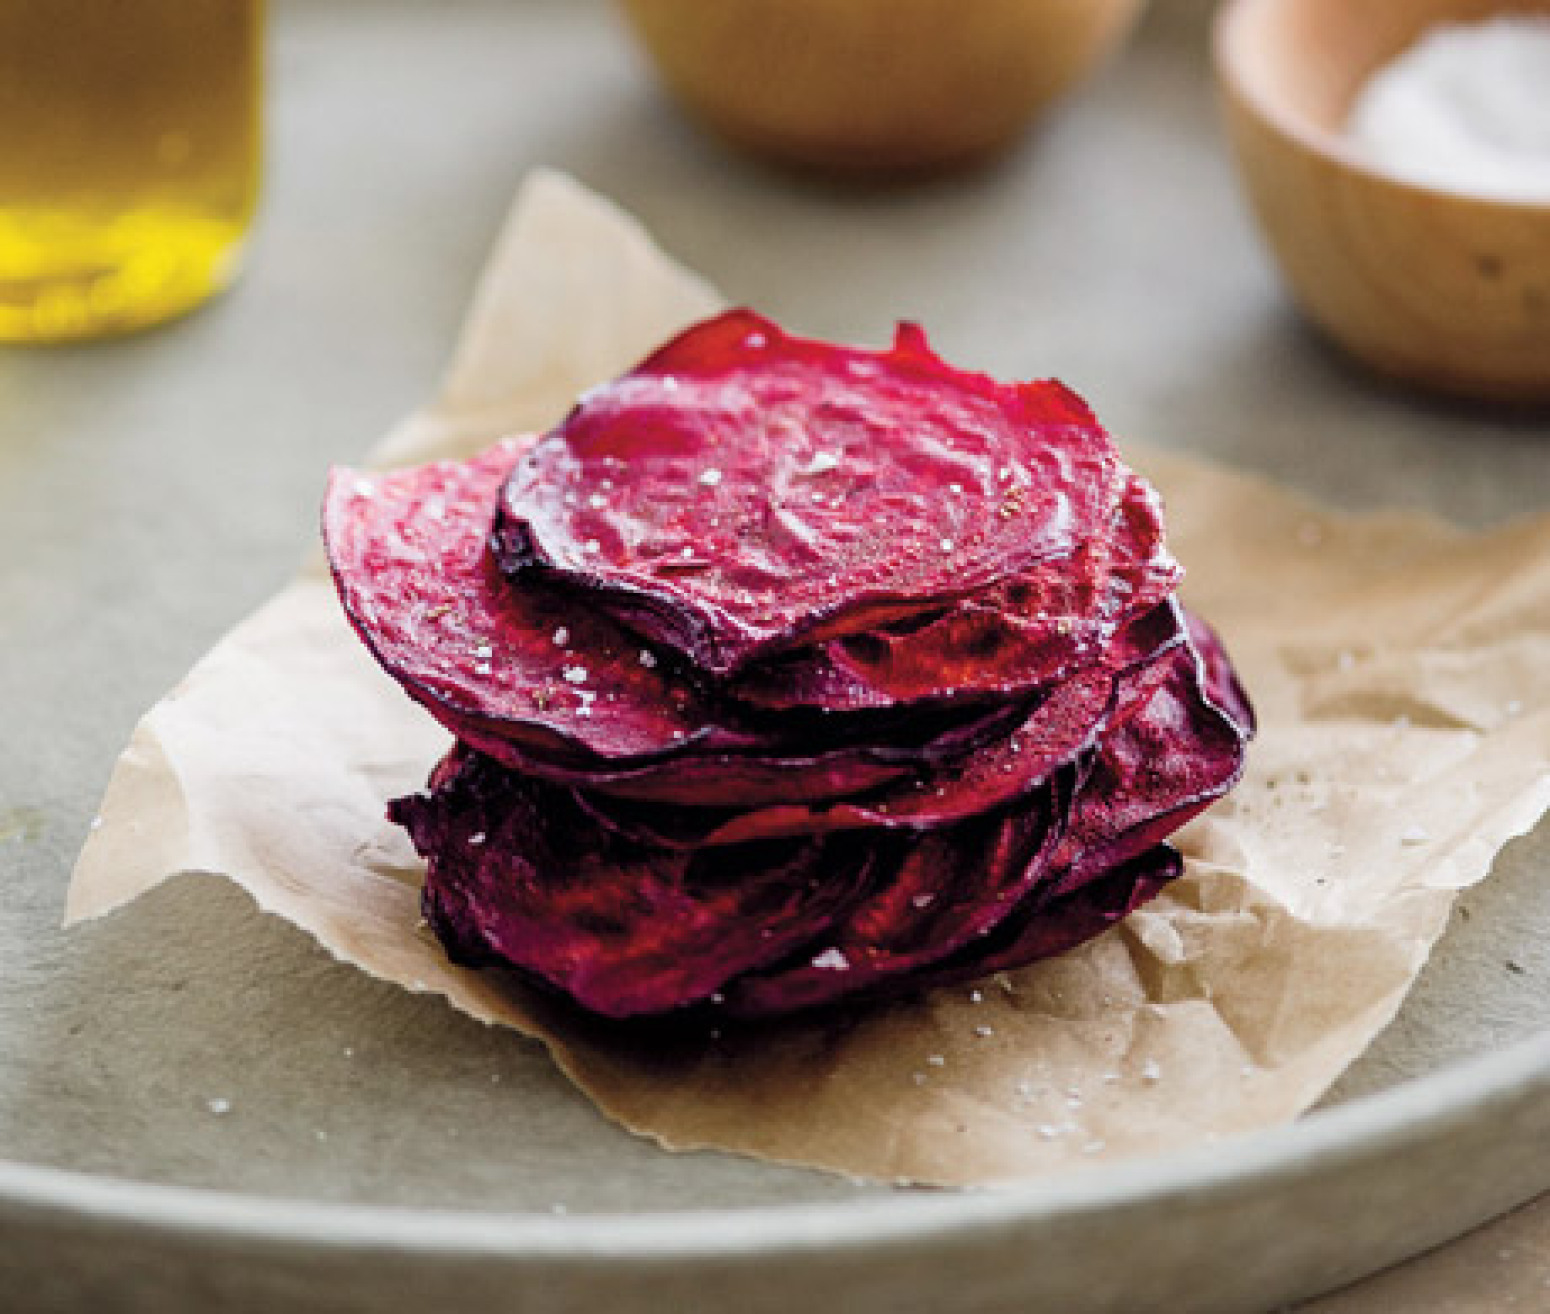 Olive Oil-Baked Beet Chips With Sea Salt And Black Pepper Recipe ...